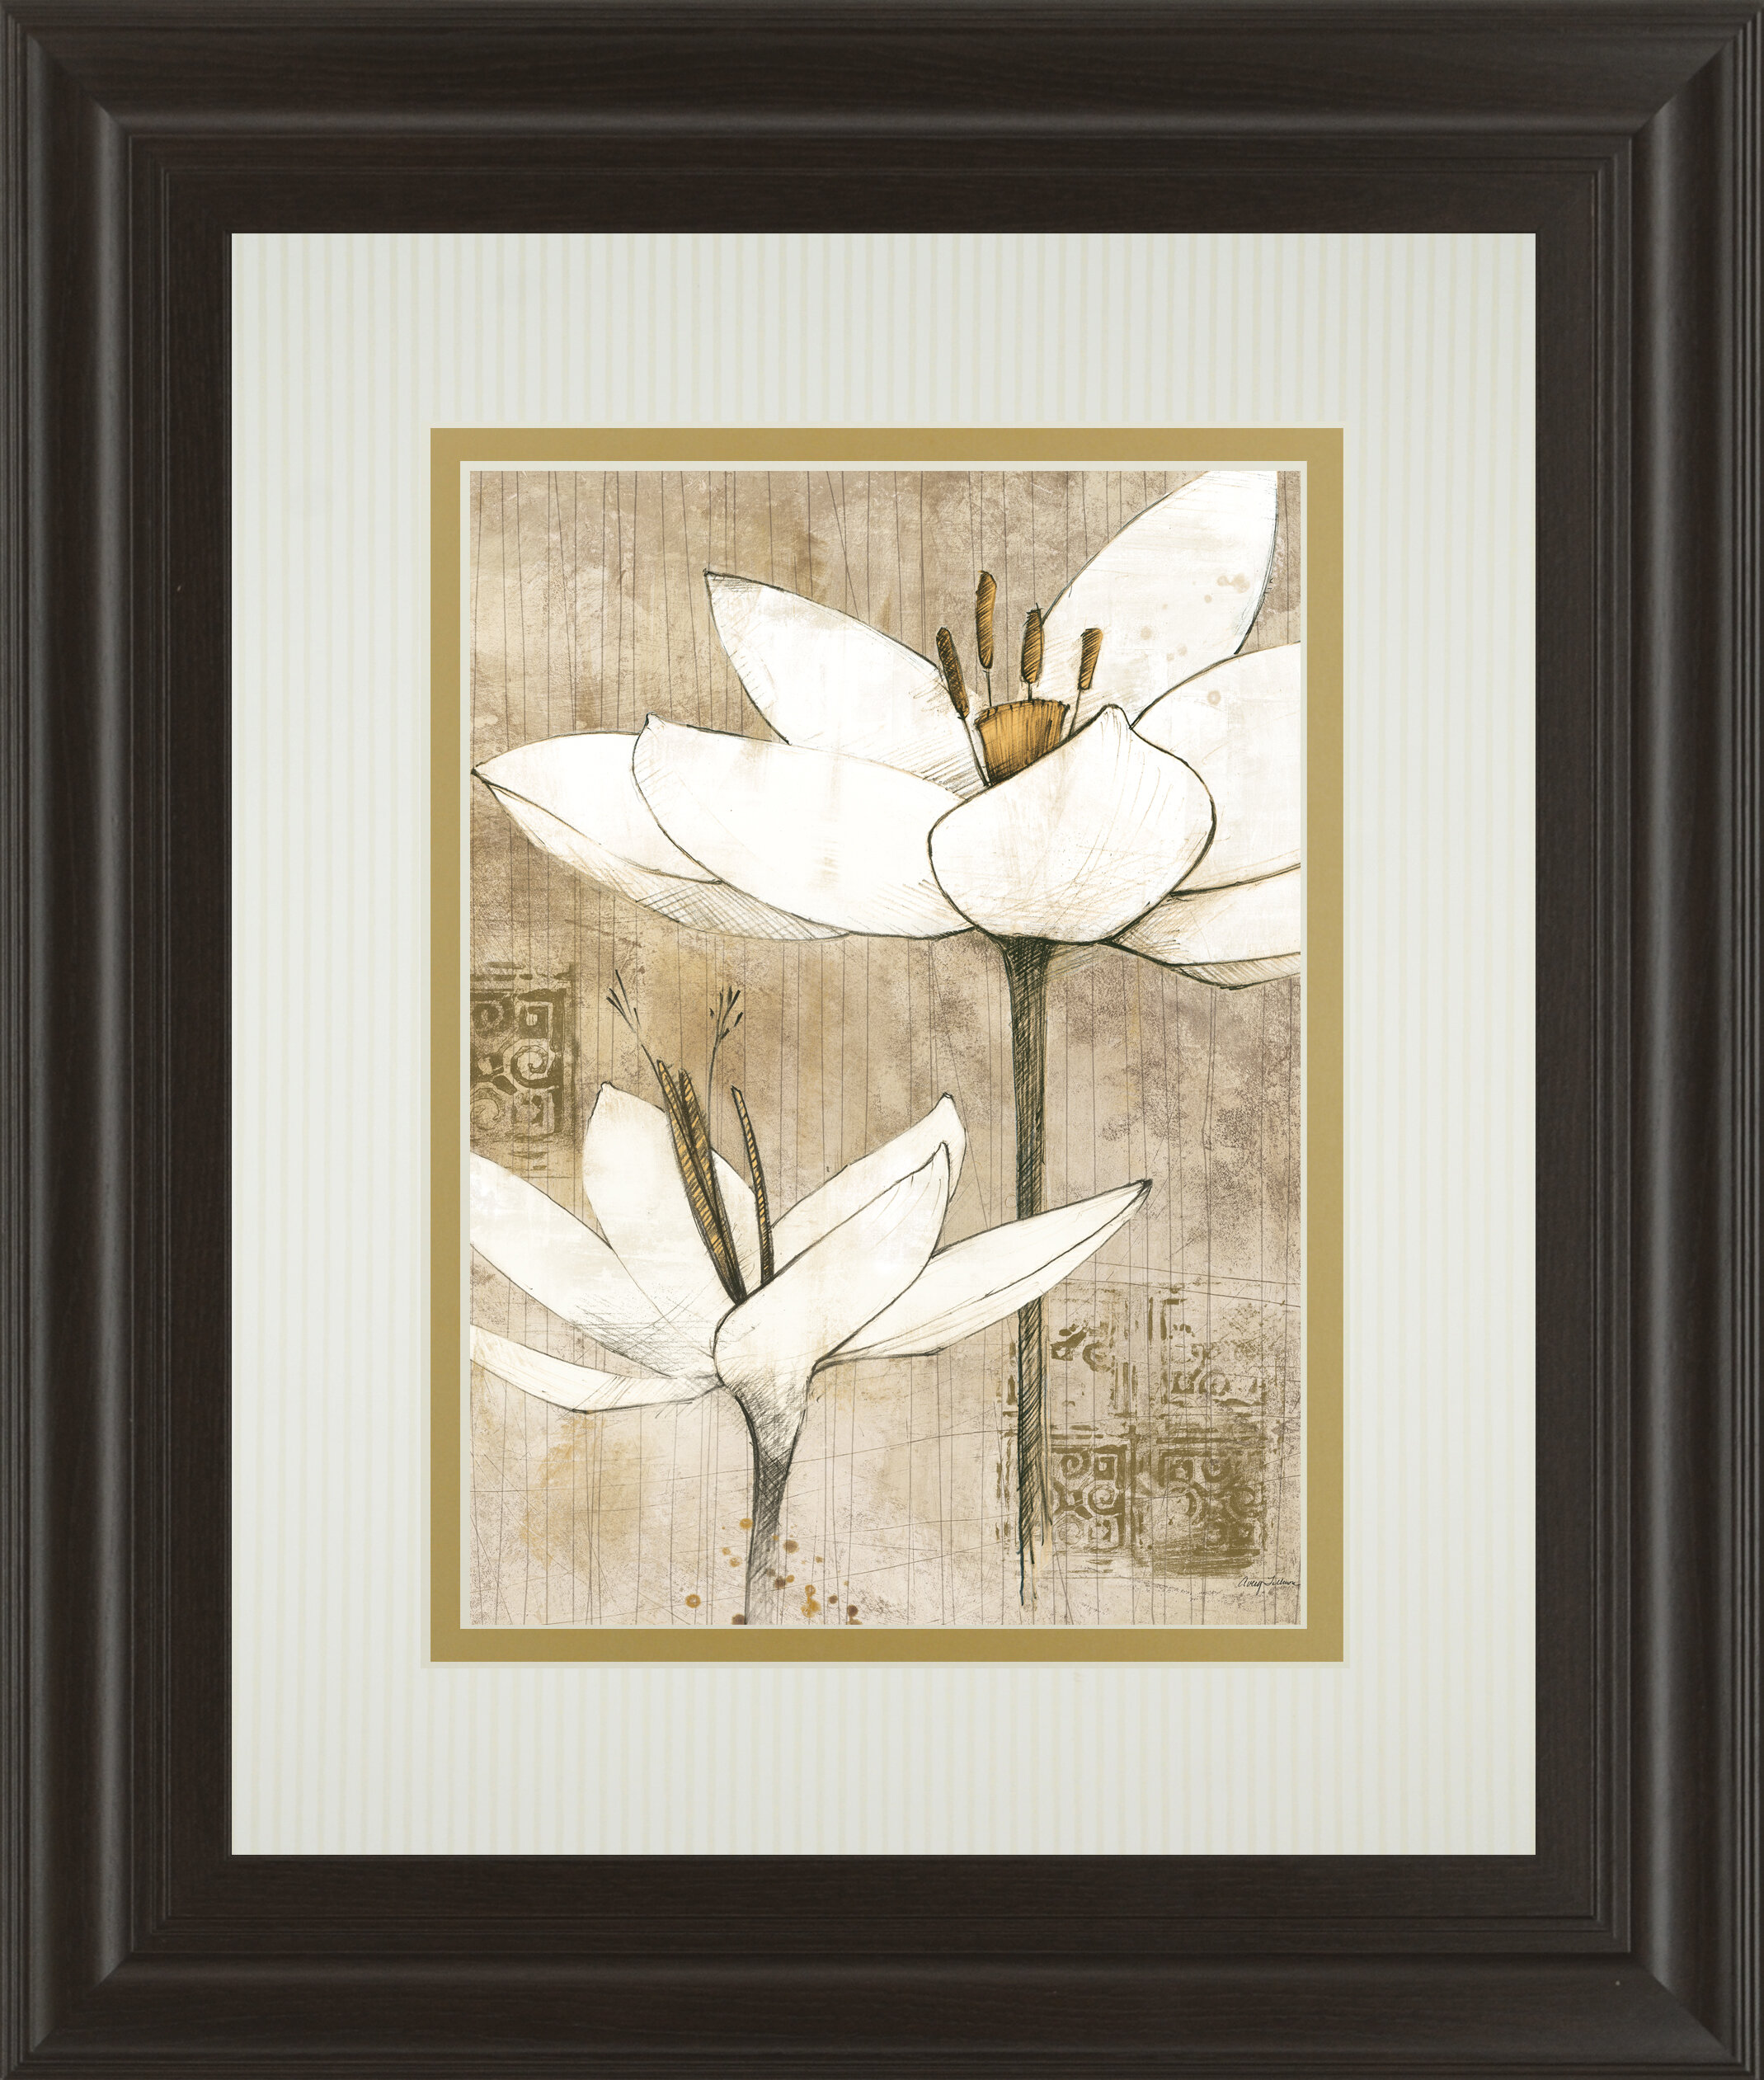 Classyartwholesalers Pencil Floral I By Avery Tillman Framed Painting Print Wayfair